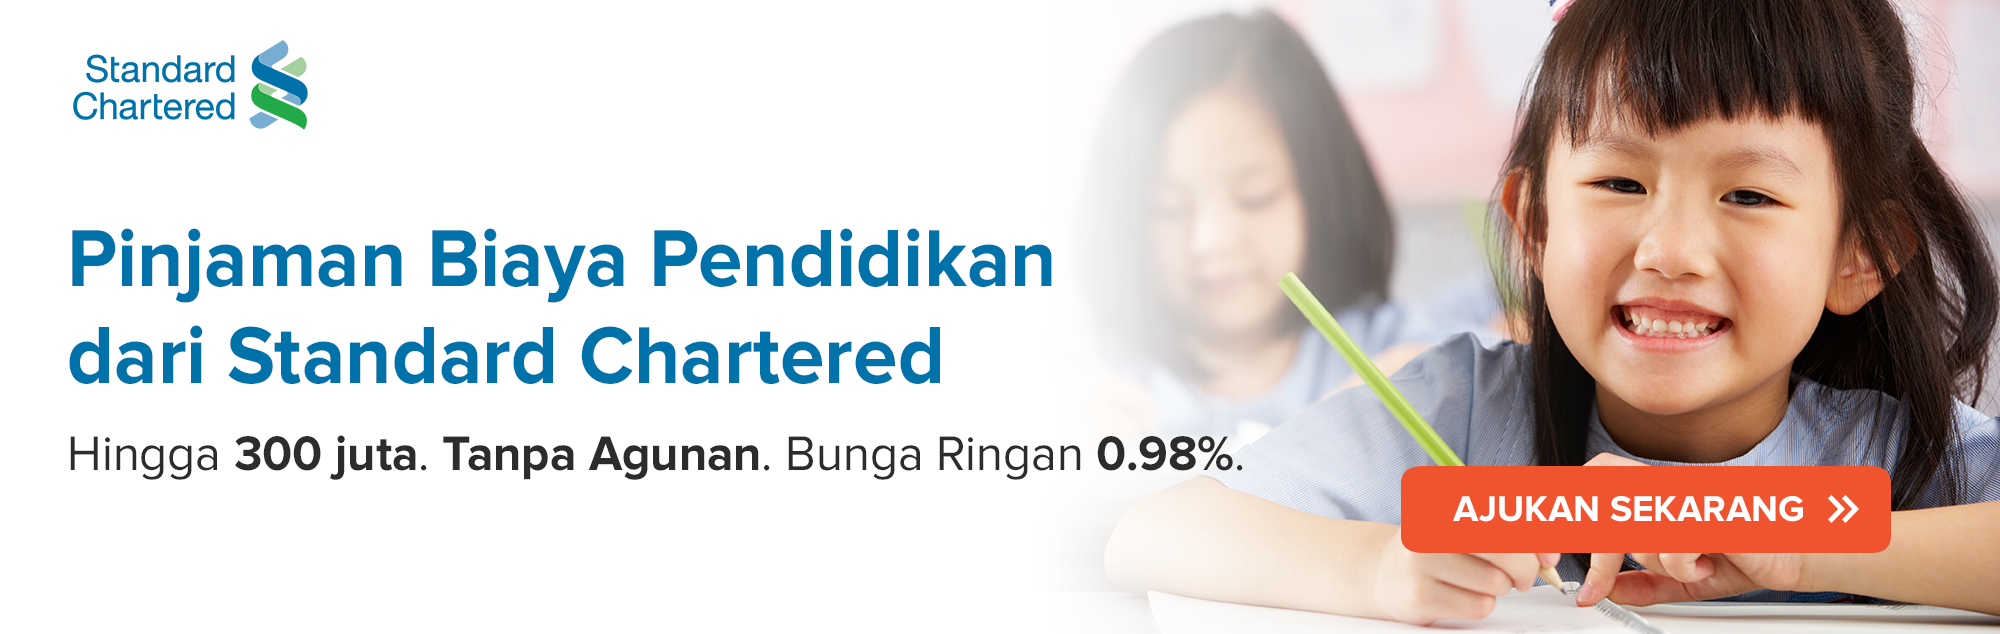 Promo Bank Standard Chartered